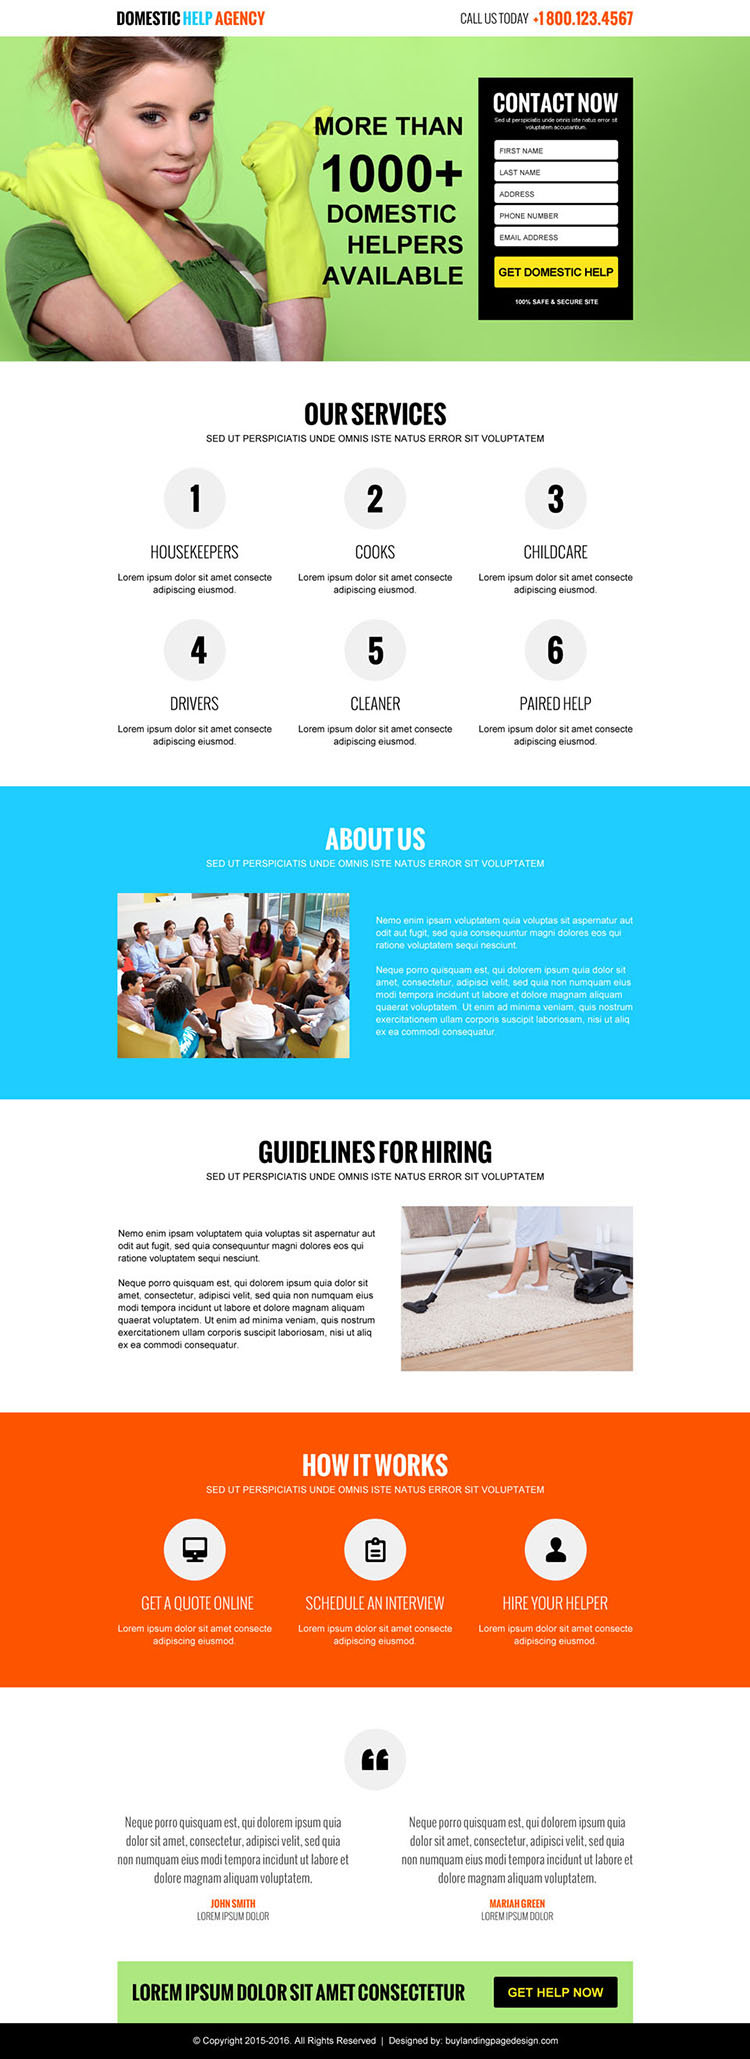 Domestic help agency lead capture lp 001 domestic help for Lead capture page templates free